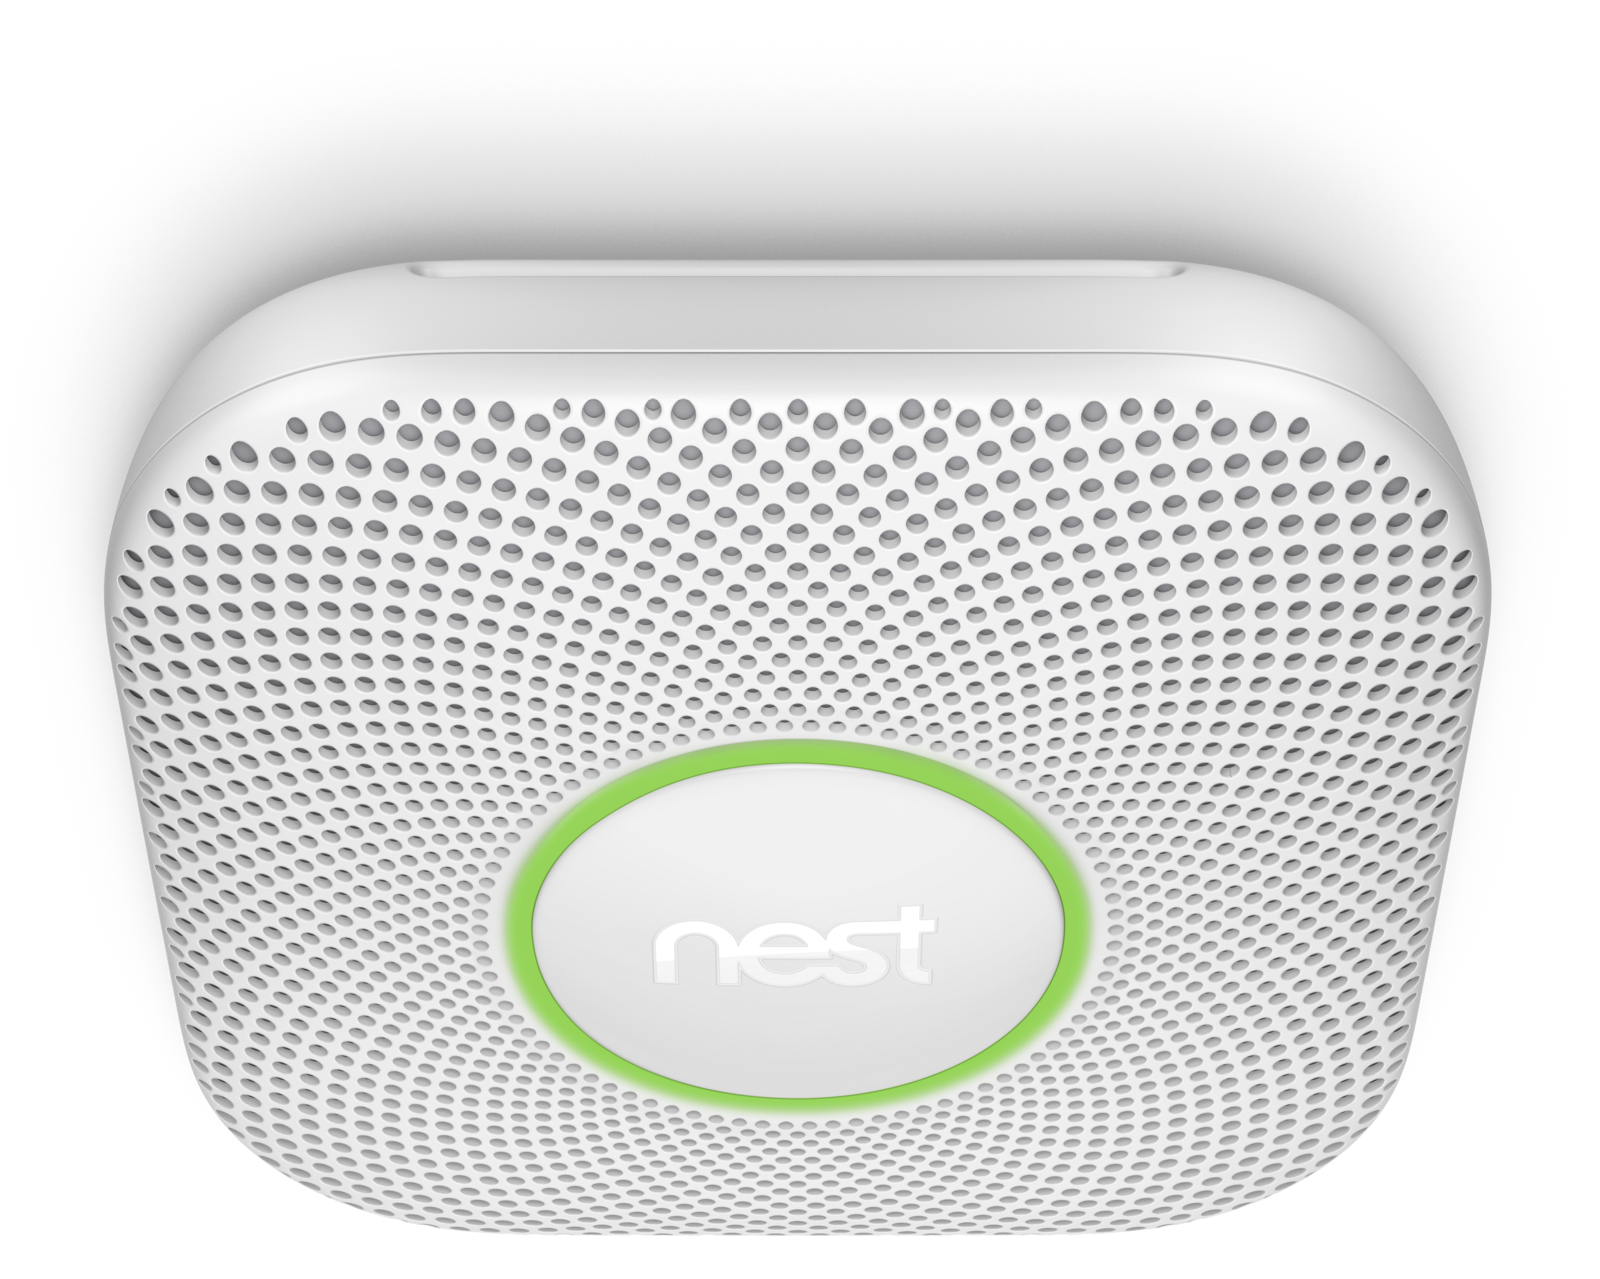 The Nest Protect Smoke & Co Alarm.  Photo 3 of 5 in Tech Talk: 3 Smart Home Devices to Sell Your House Faster